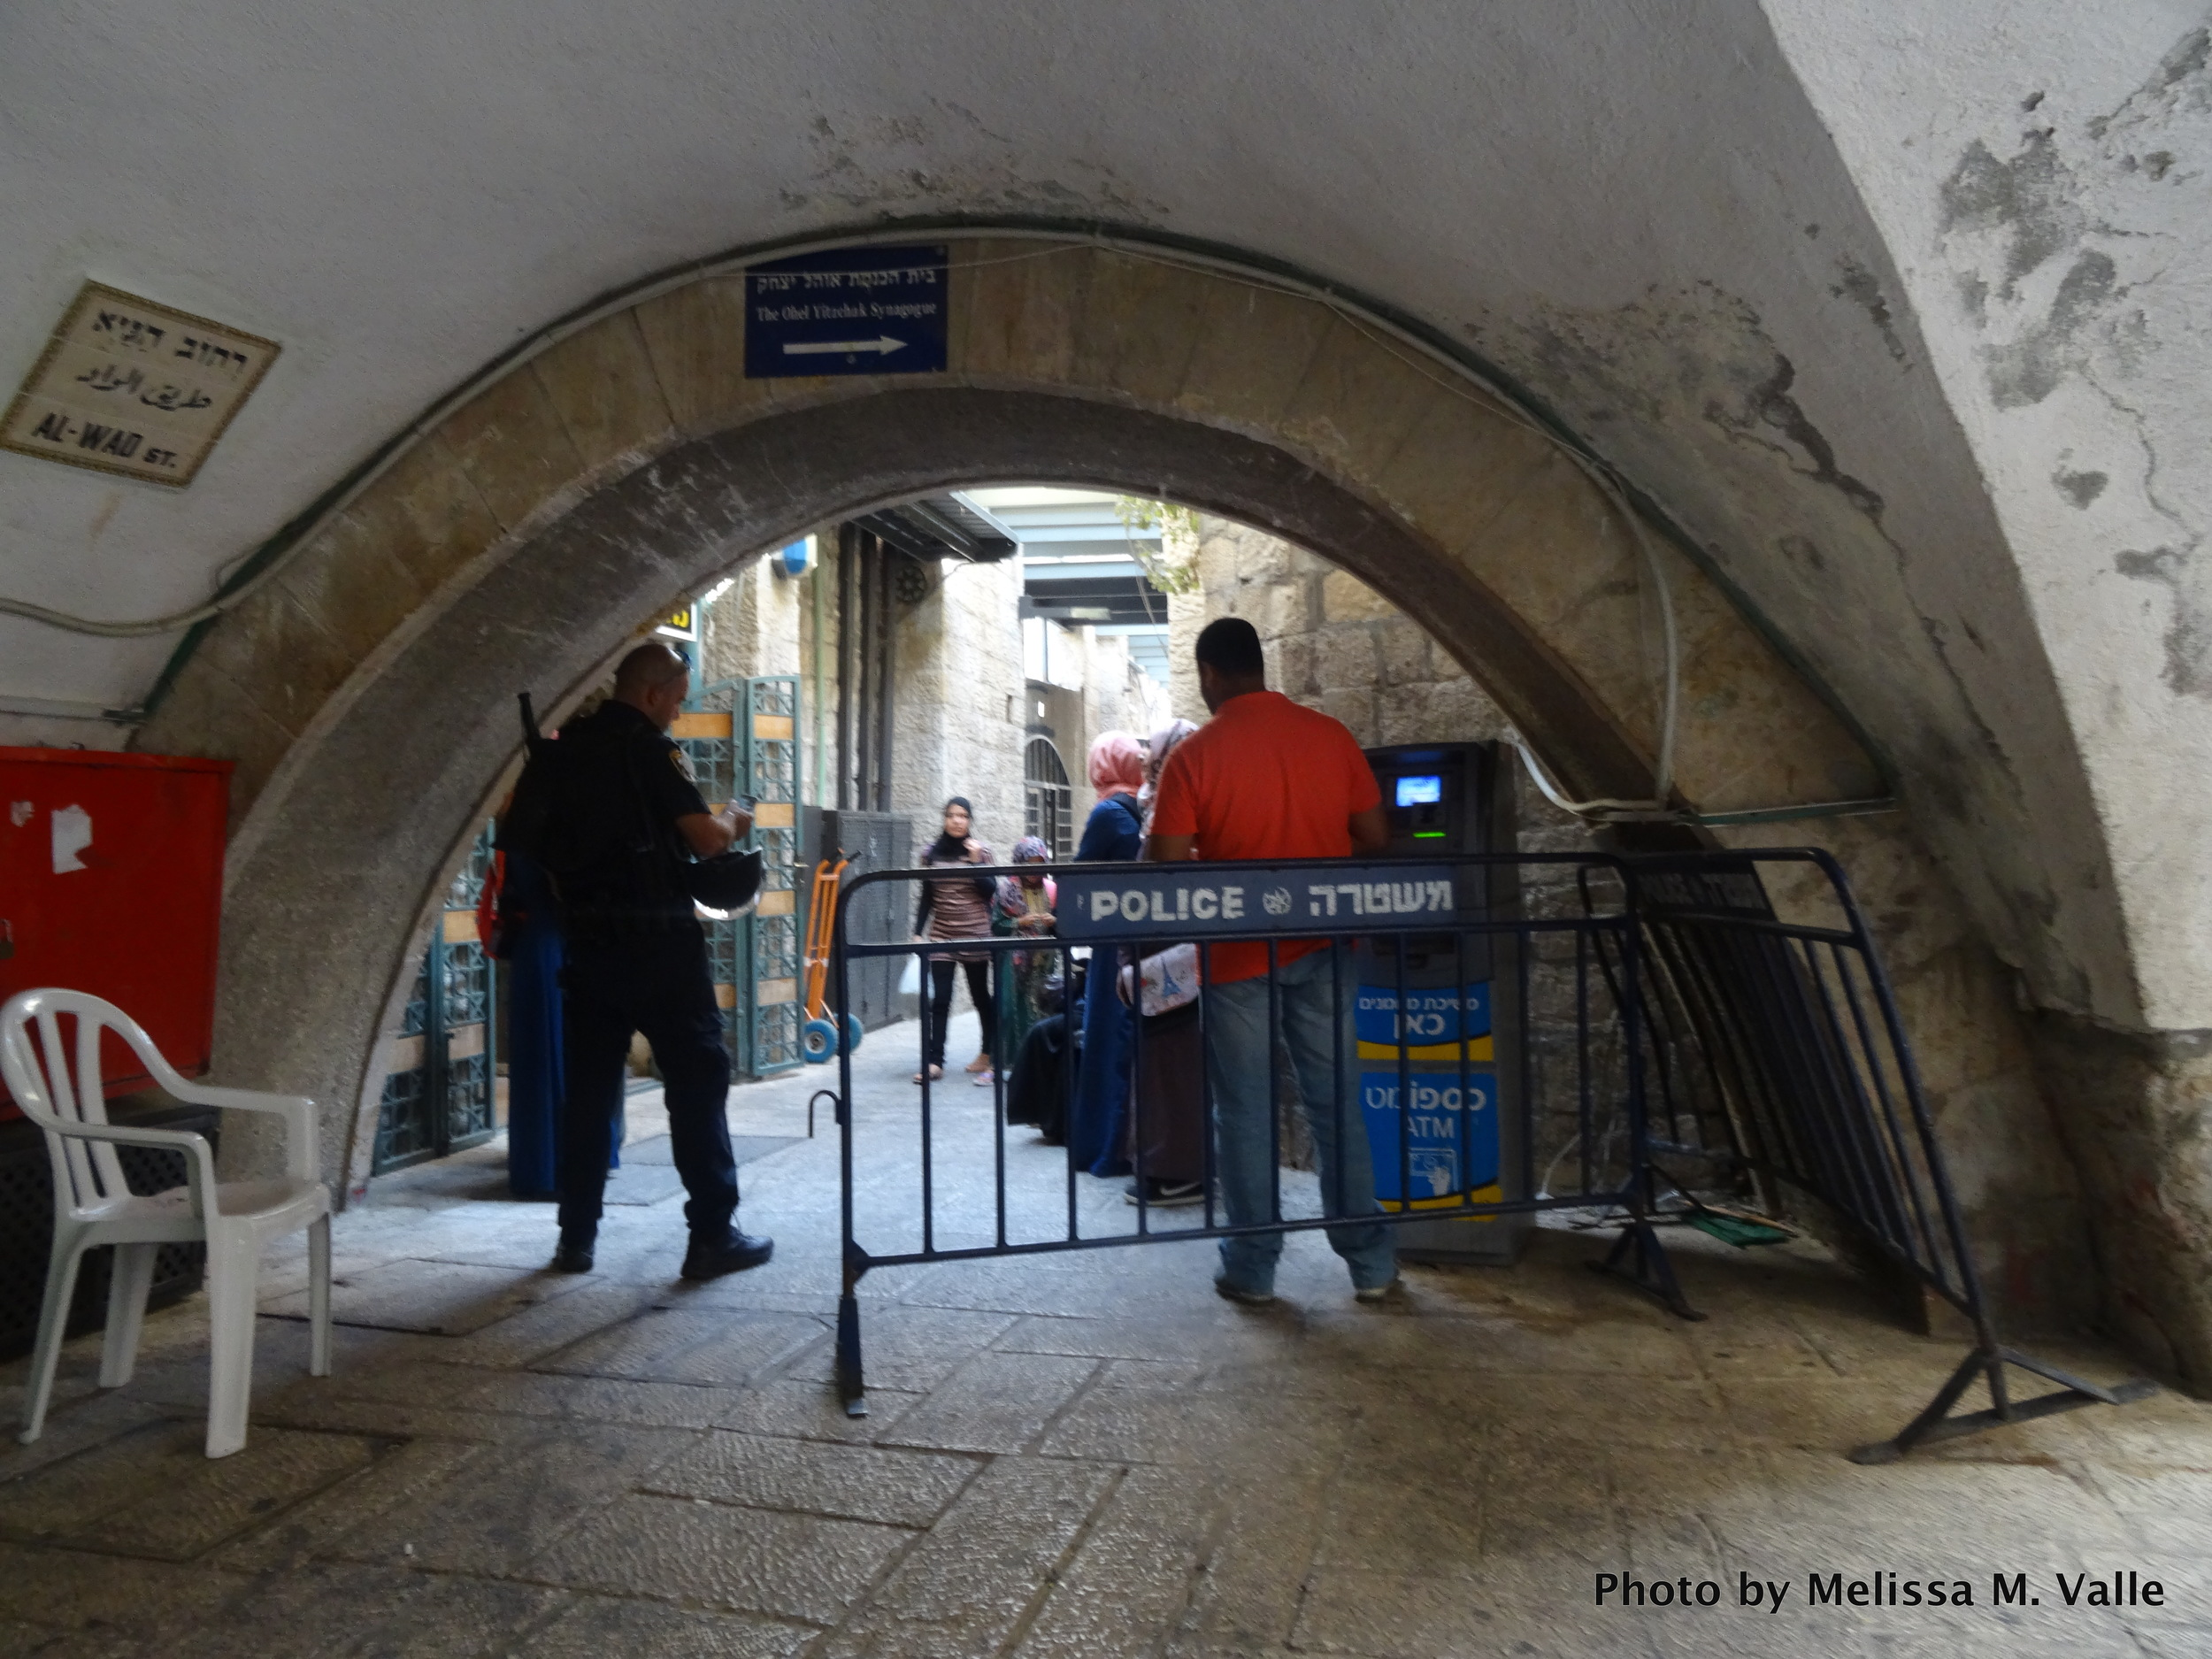 Muslim worshippers being barred from entering the gate necessary to reach Al-Aqsa Mosque on July 26, 2015